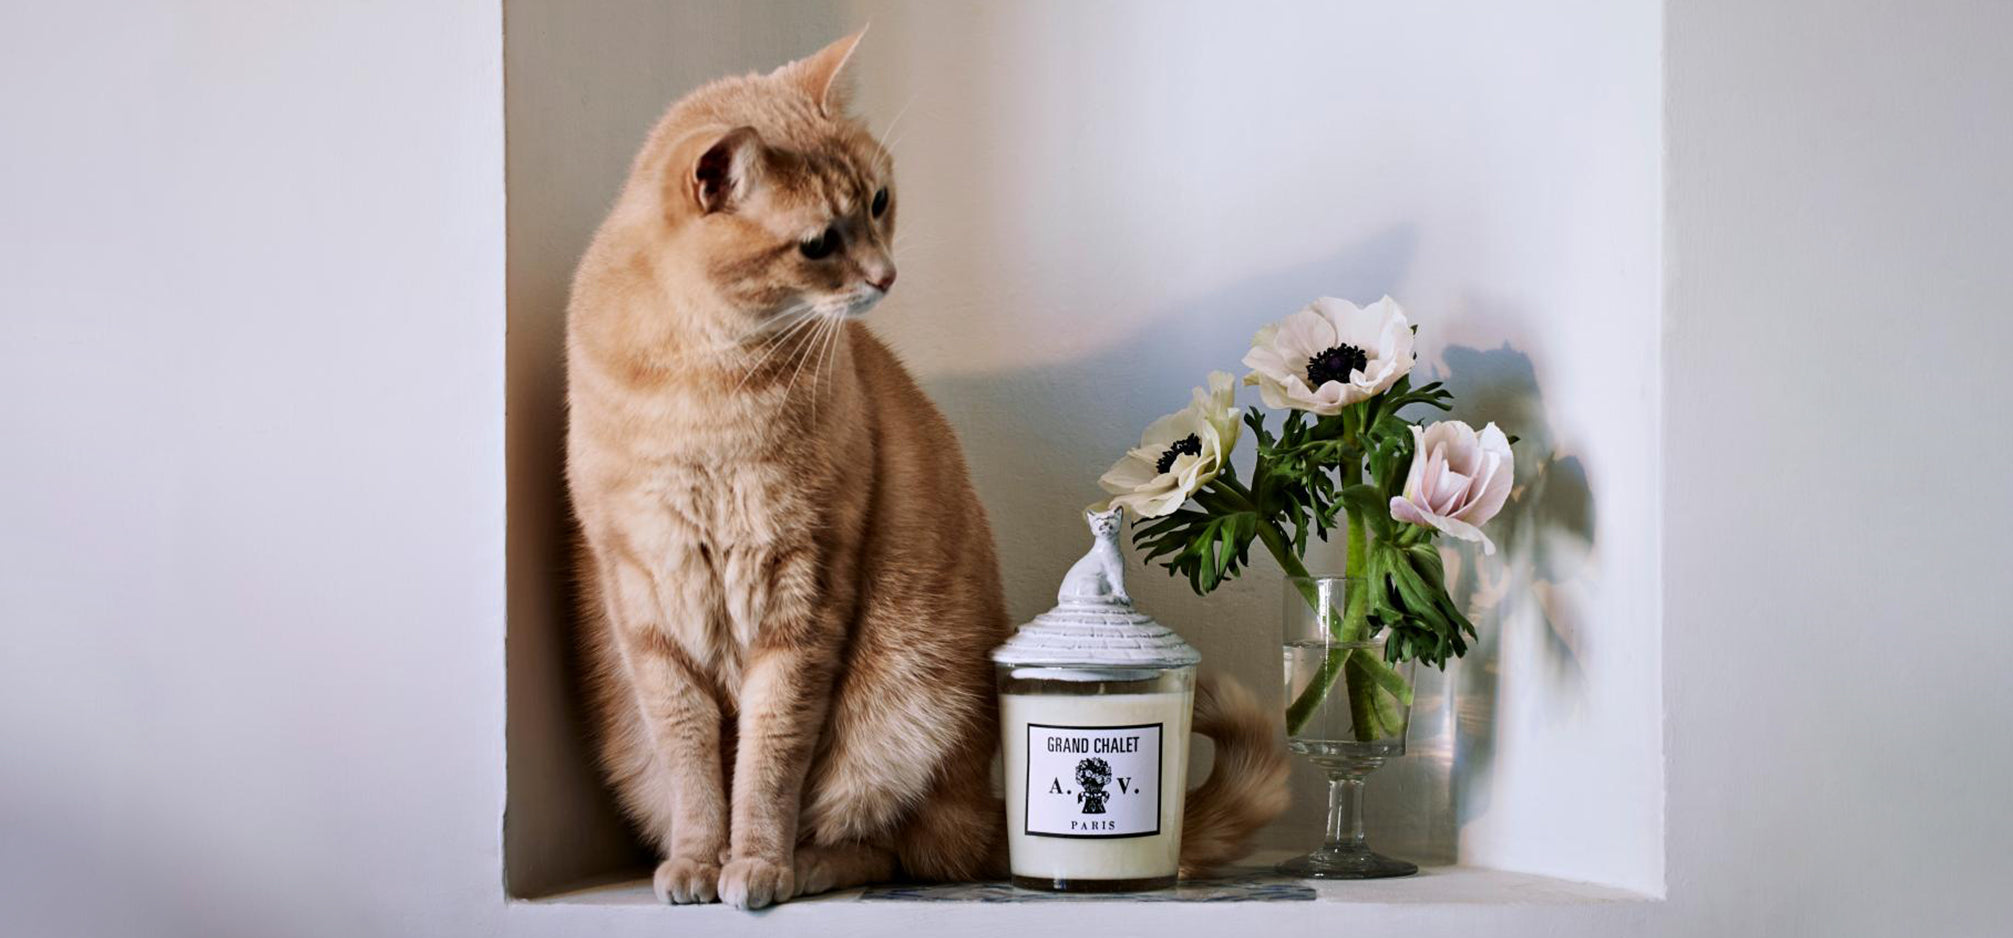 A shelf with a candle and a cat on it.